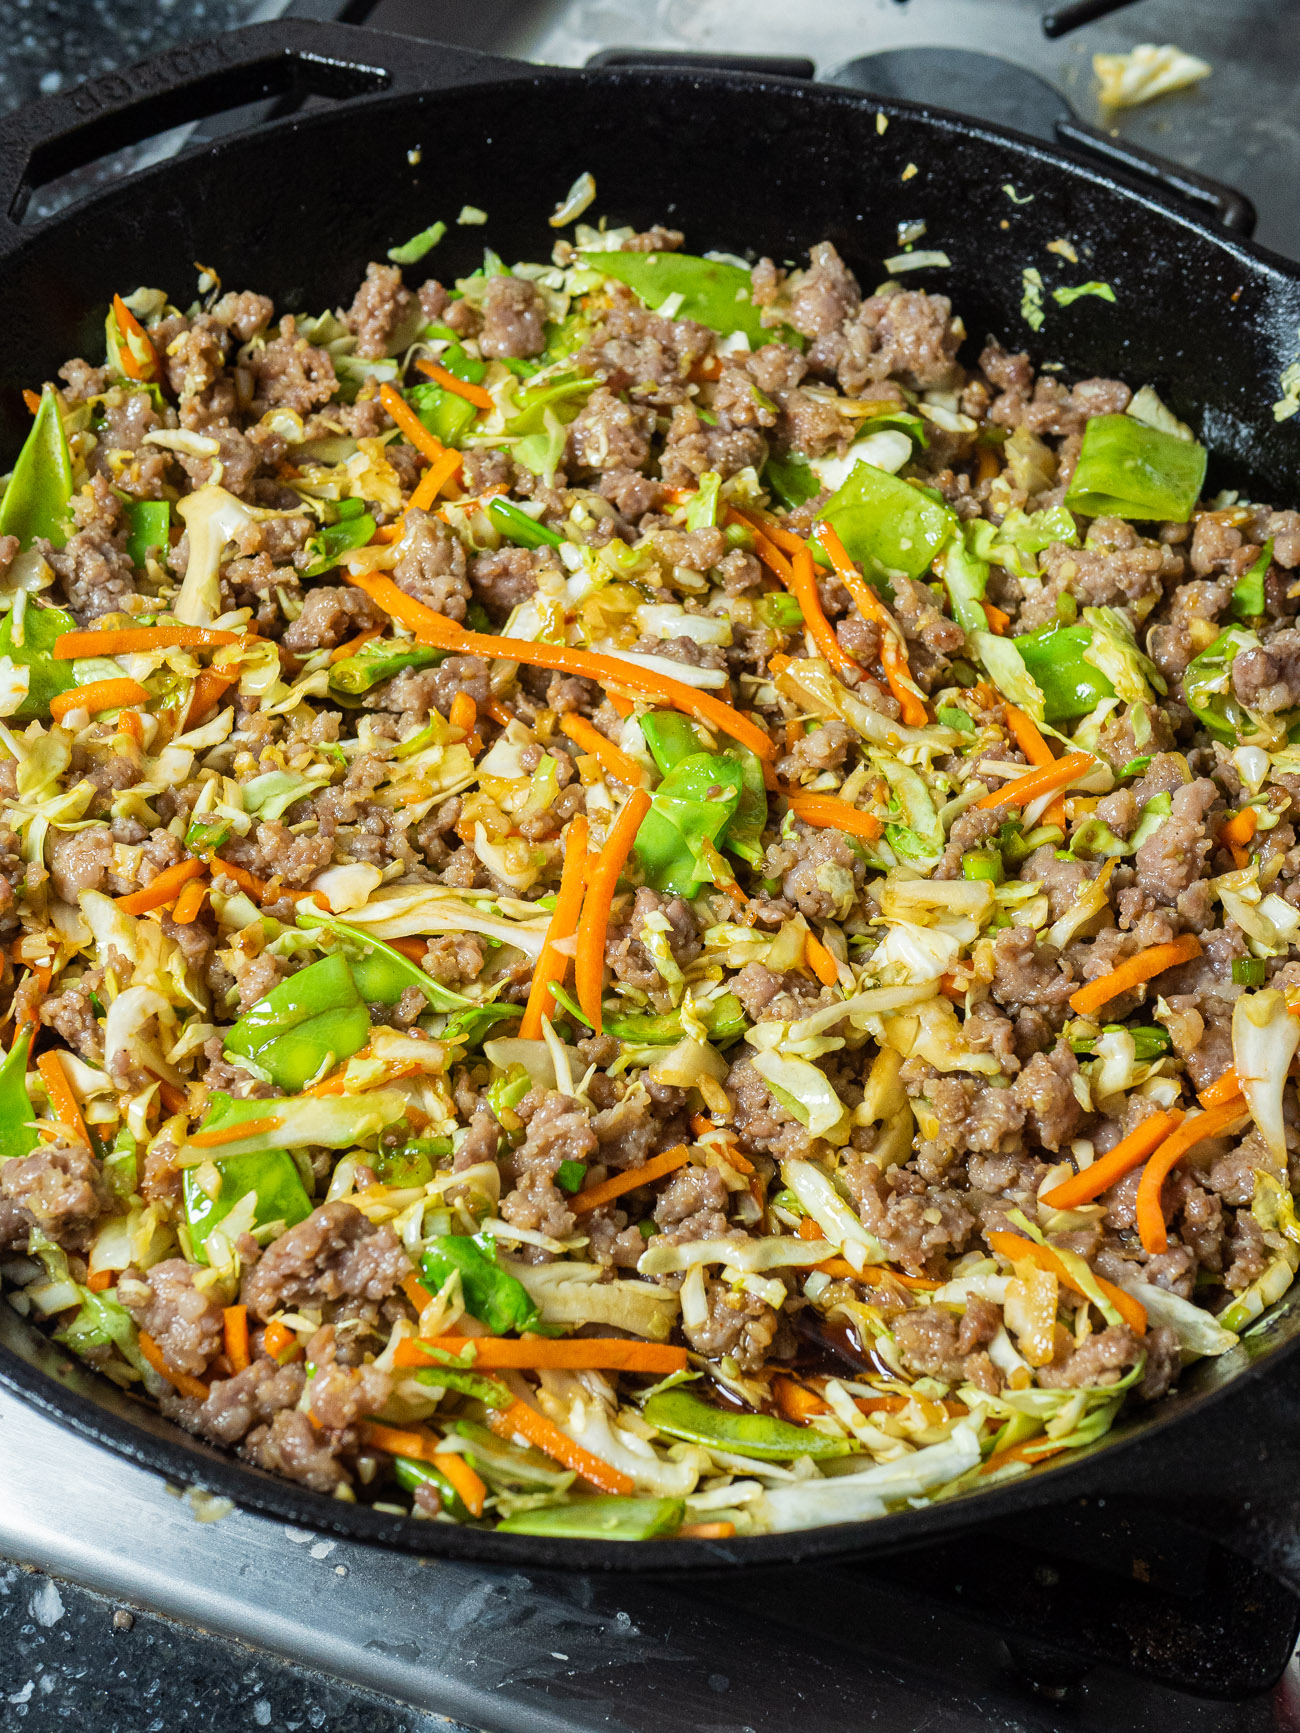 Remove from heat and let noodles stand 1 to 2 minutes, stirring occasionally until all of the liquid is absorbed. Add noodles to bowl with pork mixture, stirring to combine. Spoon mixture into baking dish and cover with foil.